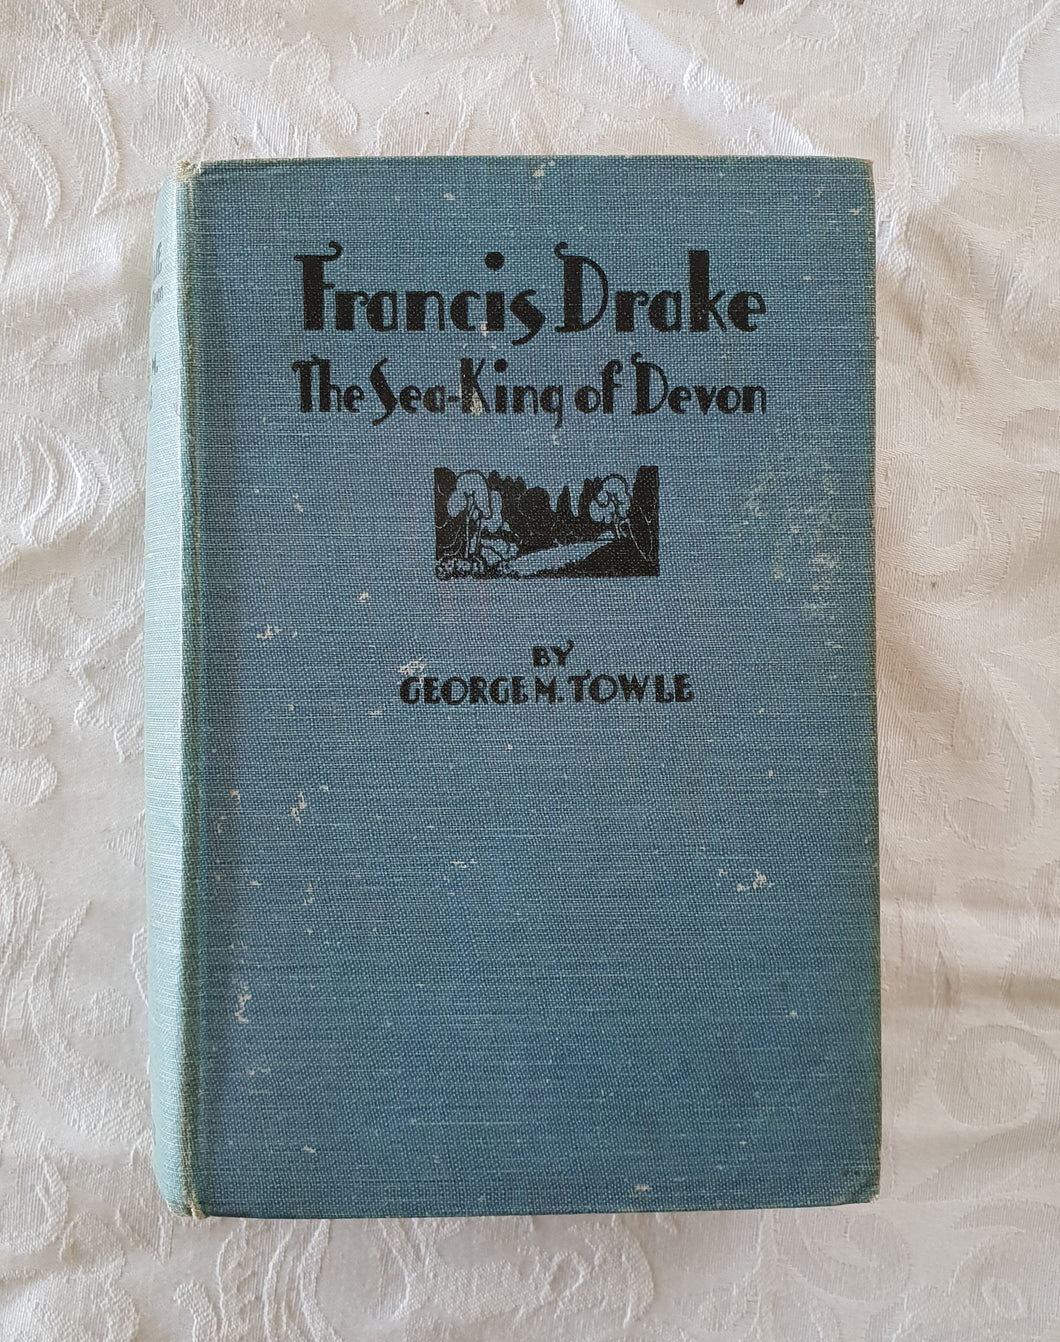 Francis Drake The Sea-King of Devon by George M. Towle